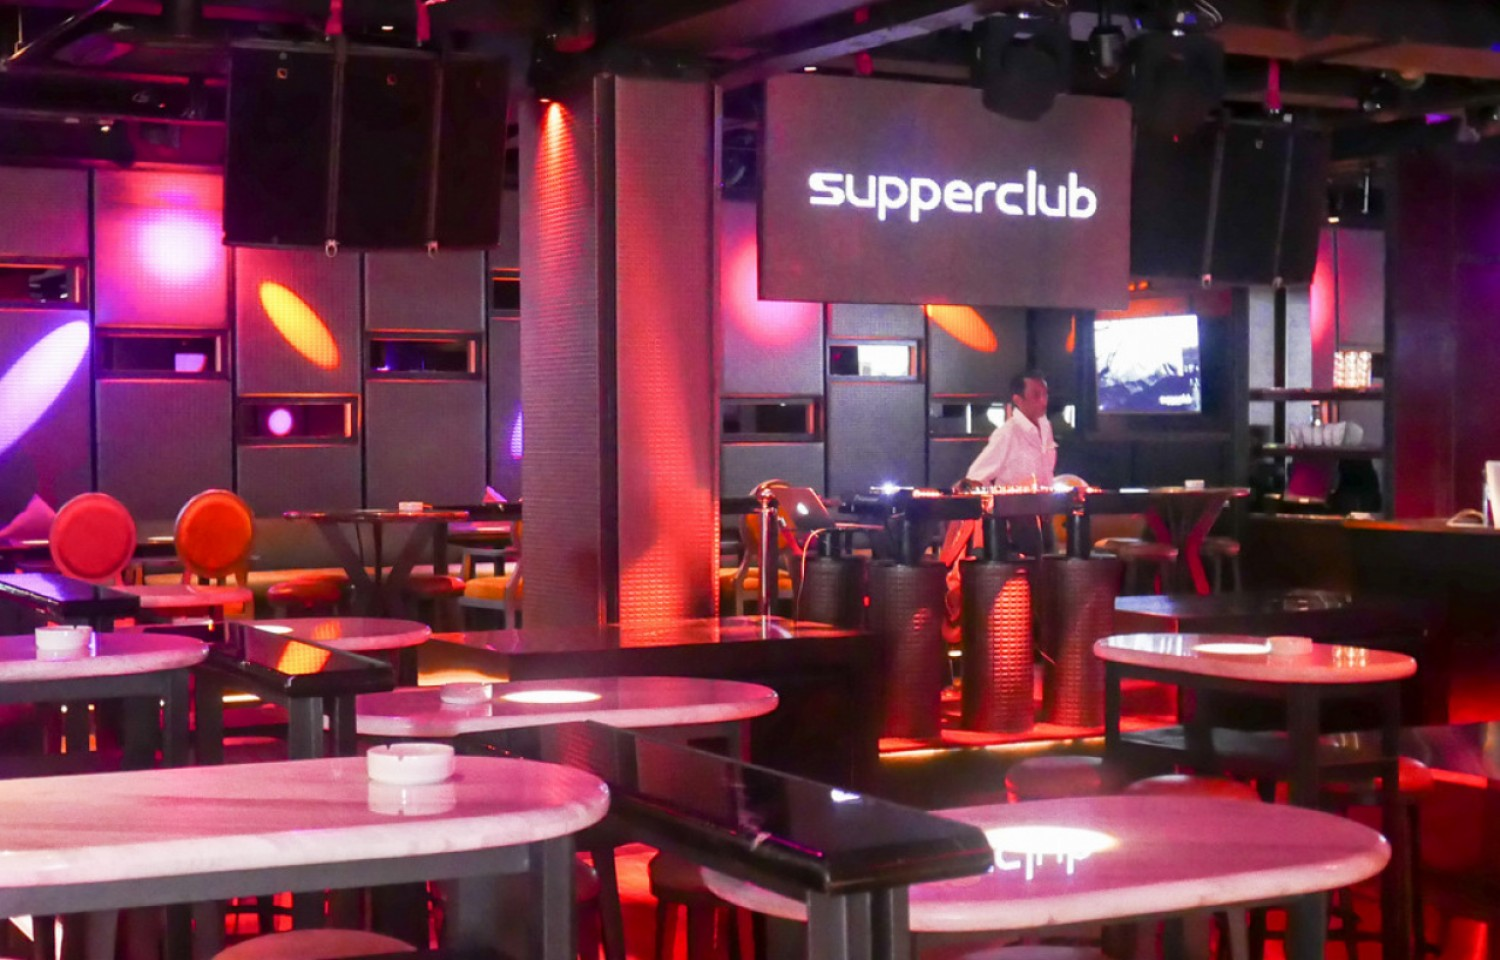 SupperclubatTrec1485247268.jpg